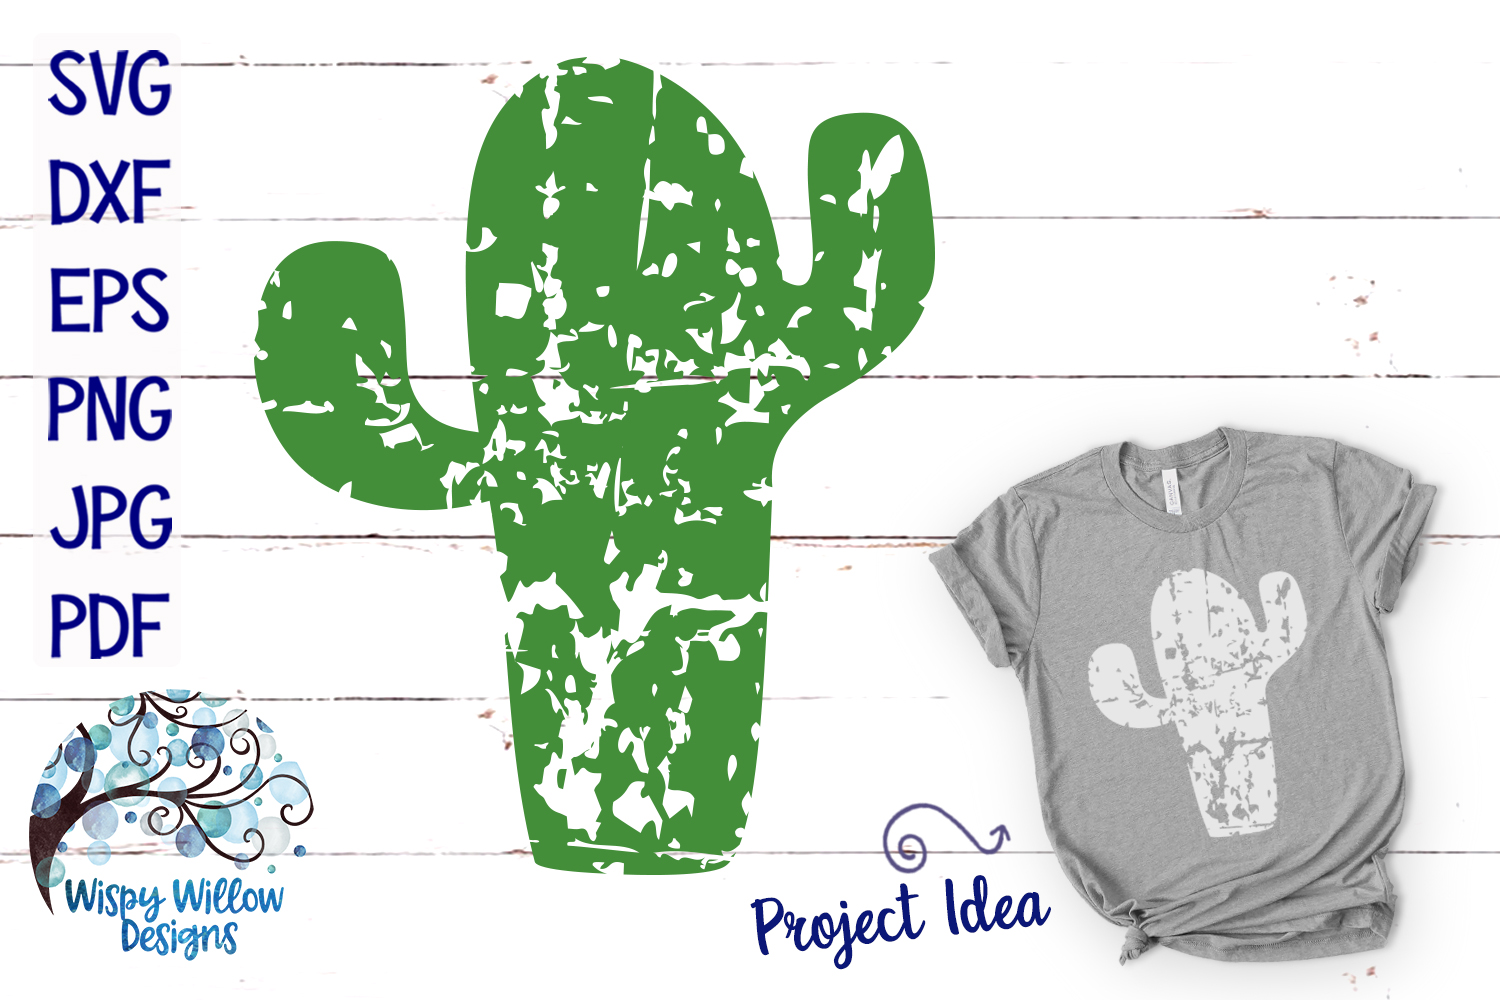 Download Free Distressed Grunge Cactus Svg Graphic By Wispywillowdesigns for Cricut Explore, Silhouette and other cutting machines.